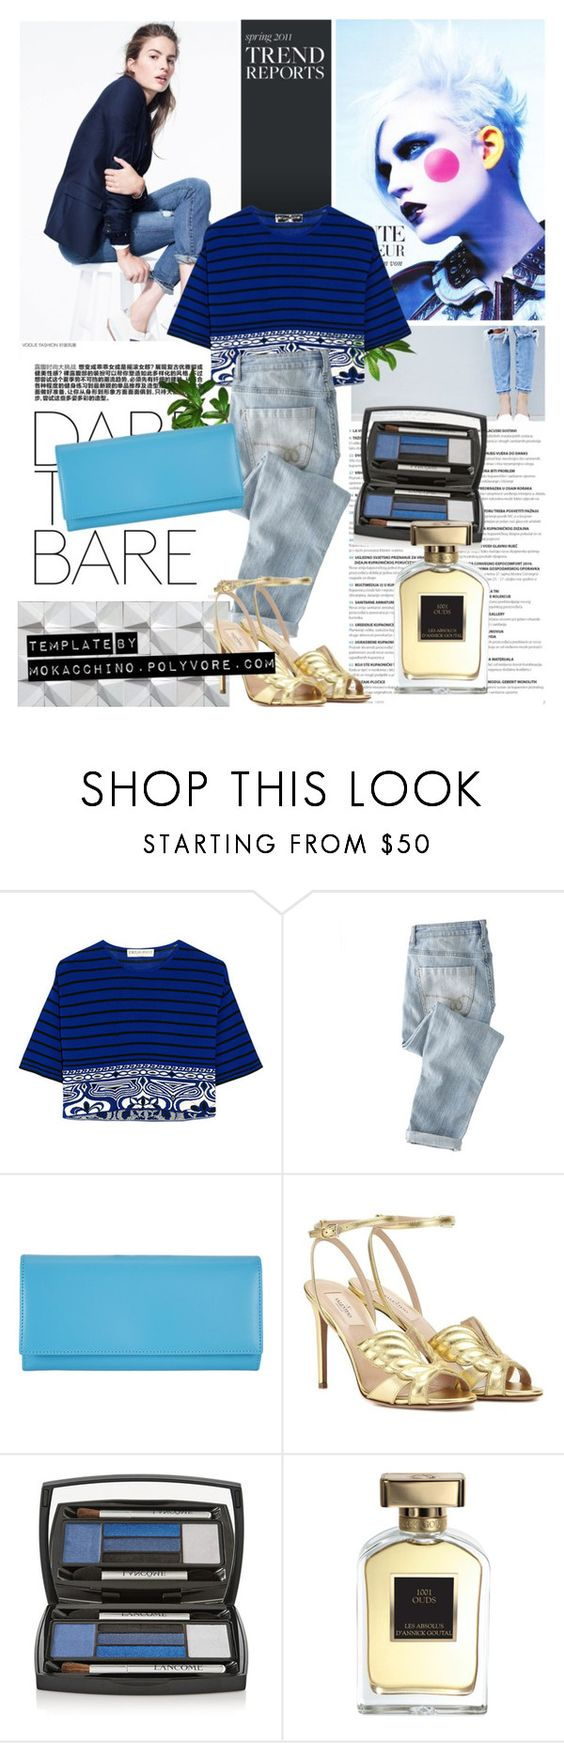 """CroppedKnittedTop"" by mokacchino ❤ liked on Polyvore featuring J.Crew, Emilio Pucci, Wrap, Comme des Garçons, Valentino, Lancôme and Annick Goutal"